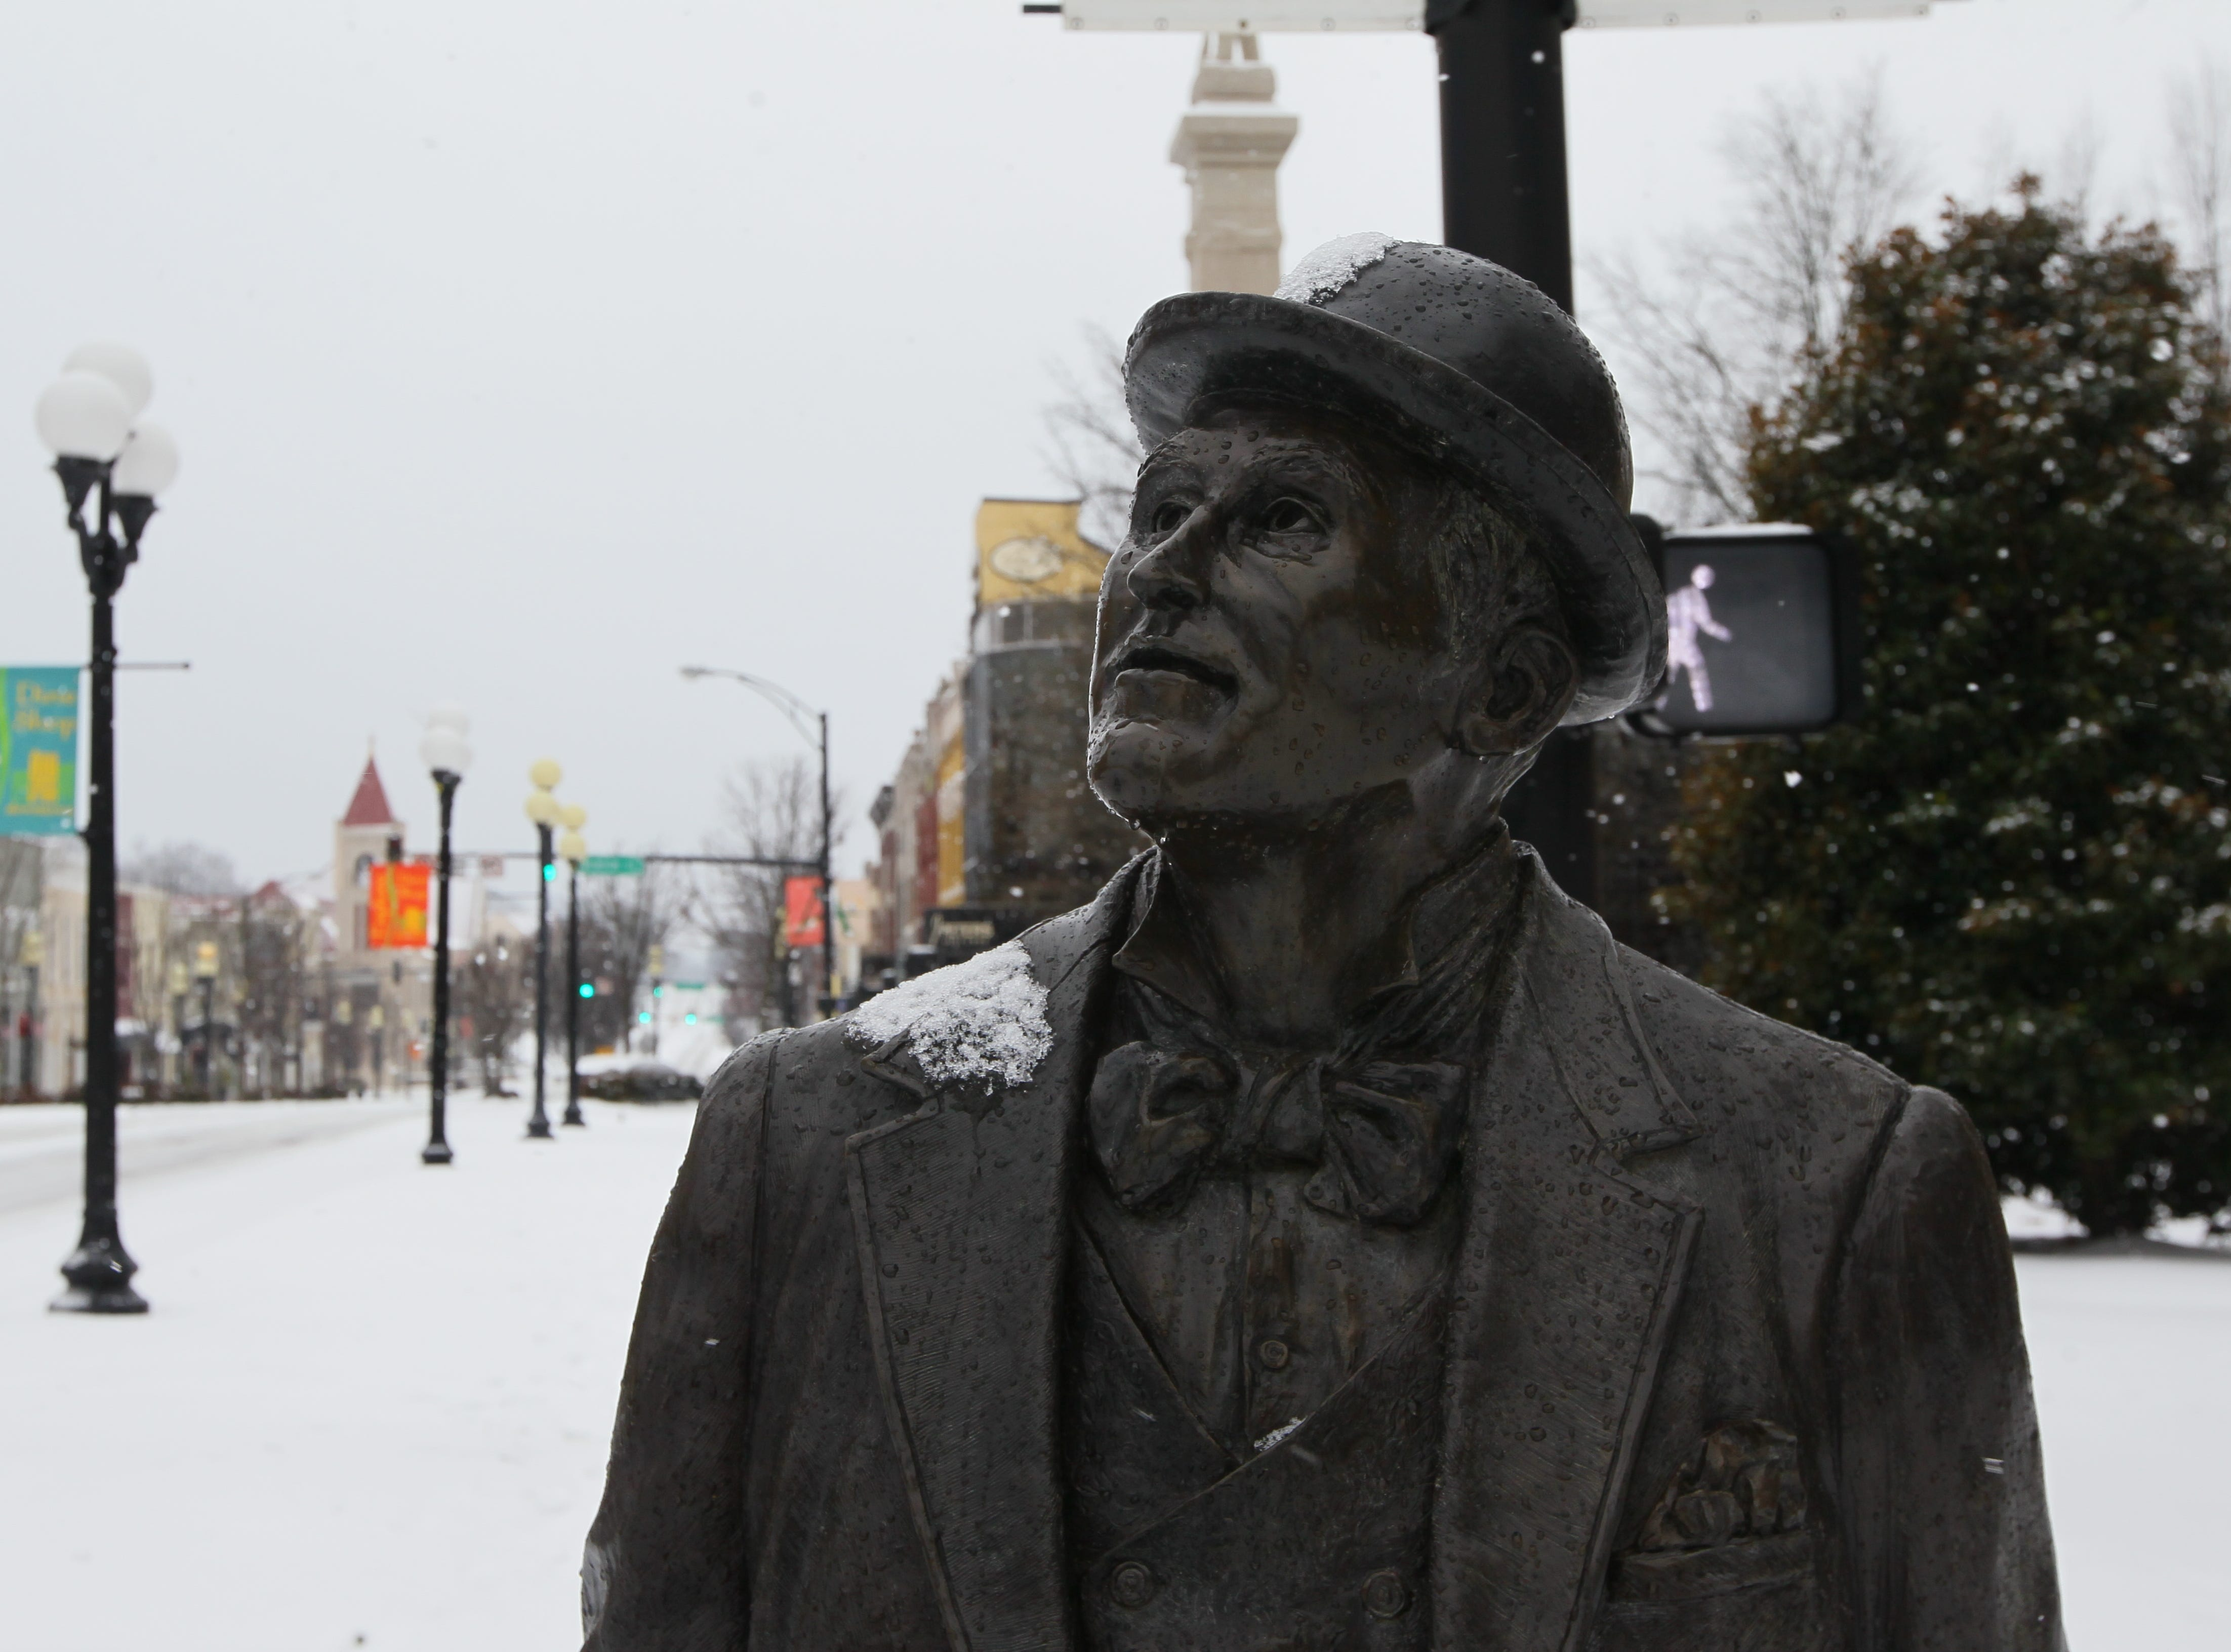 The Whitner statue near the Anderson County Courthouse during the first snow of 2014.